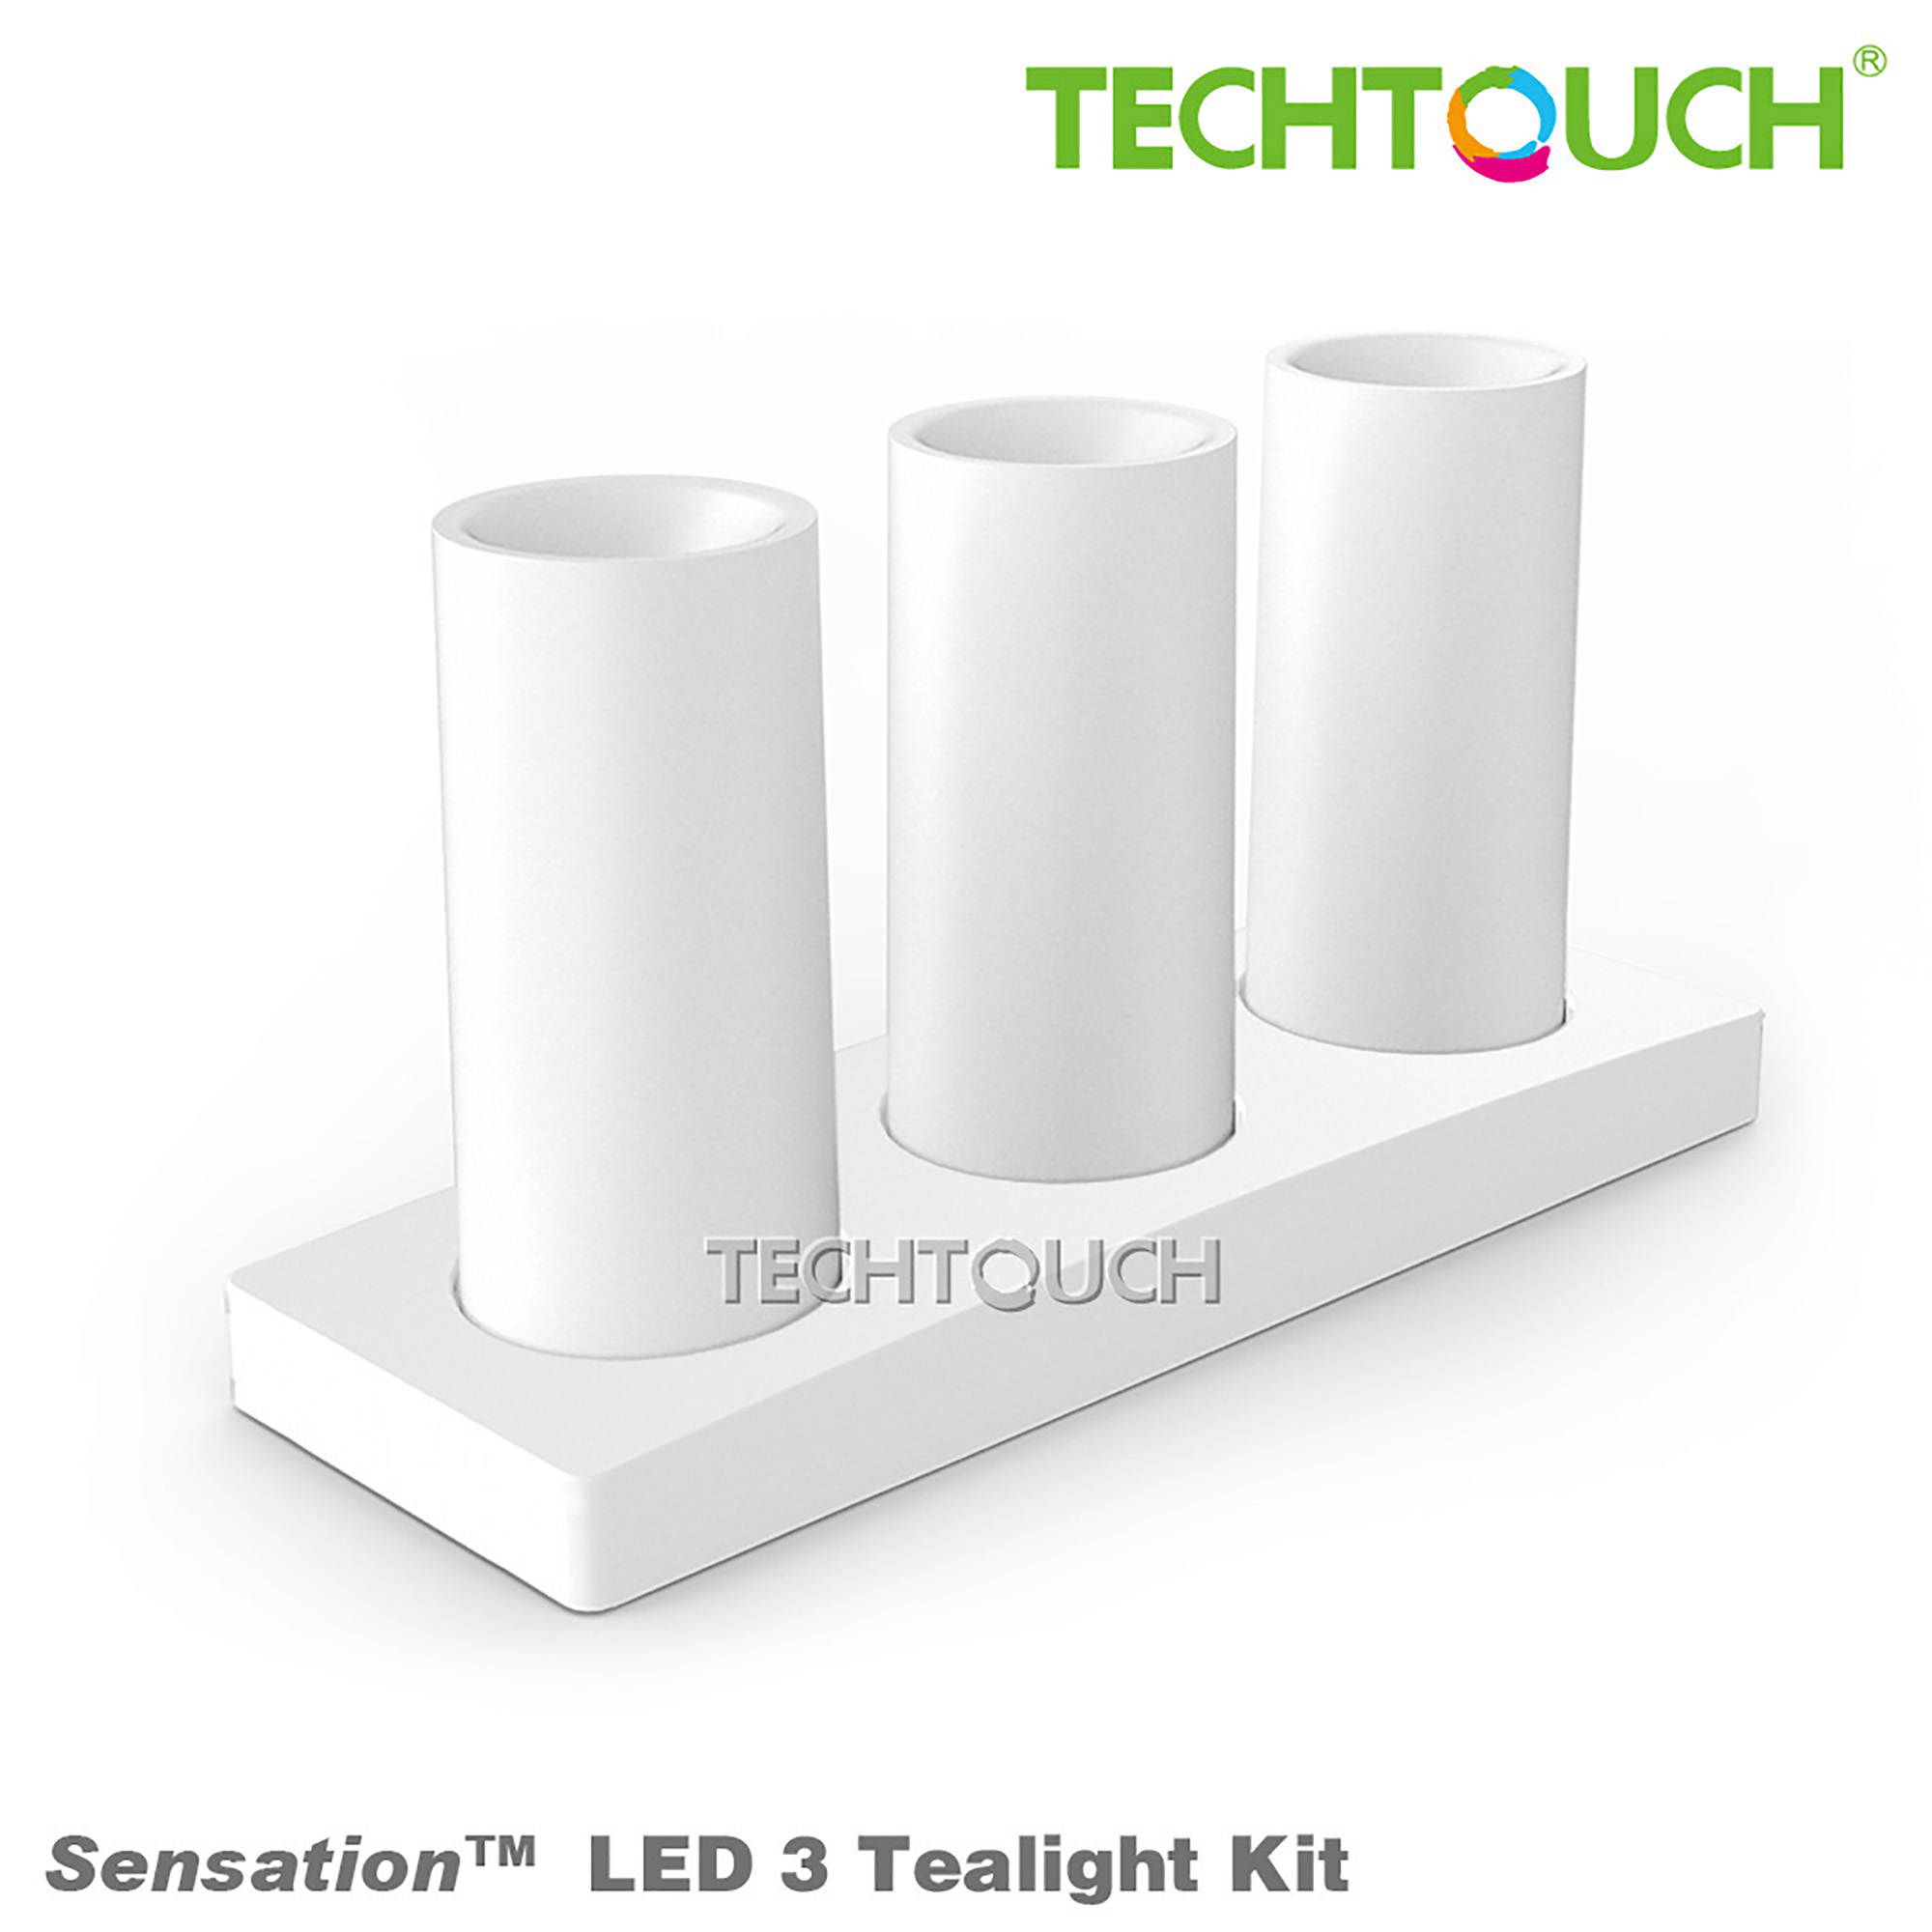 Sensation Table Lamps Techtouch Novelty/Night Light